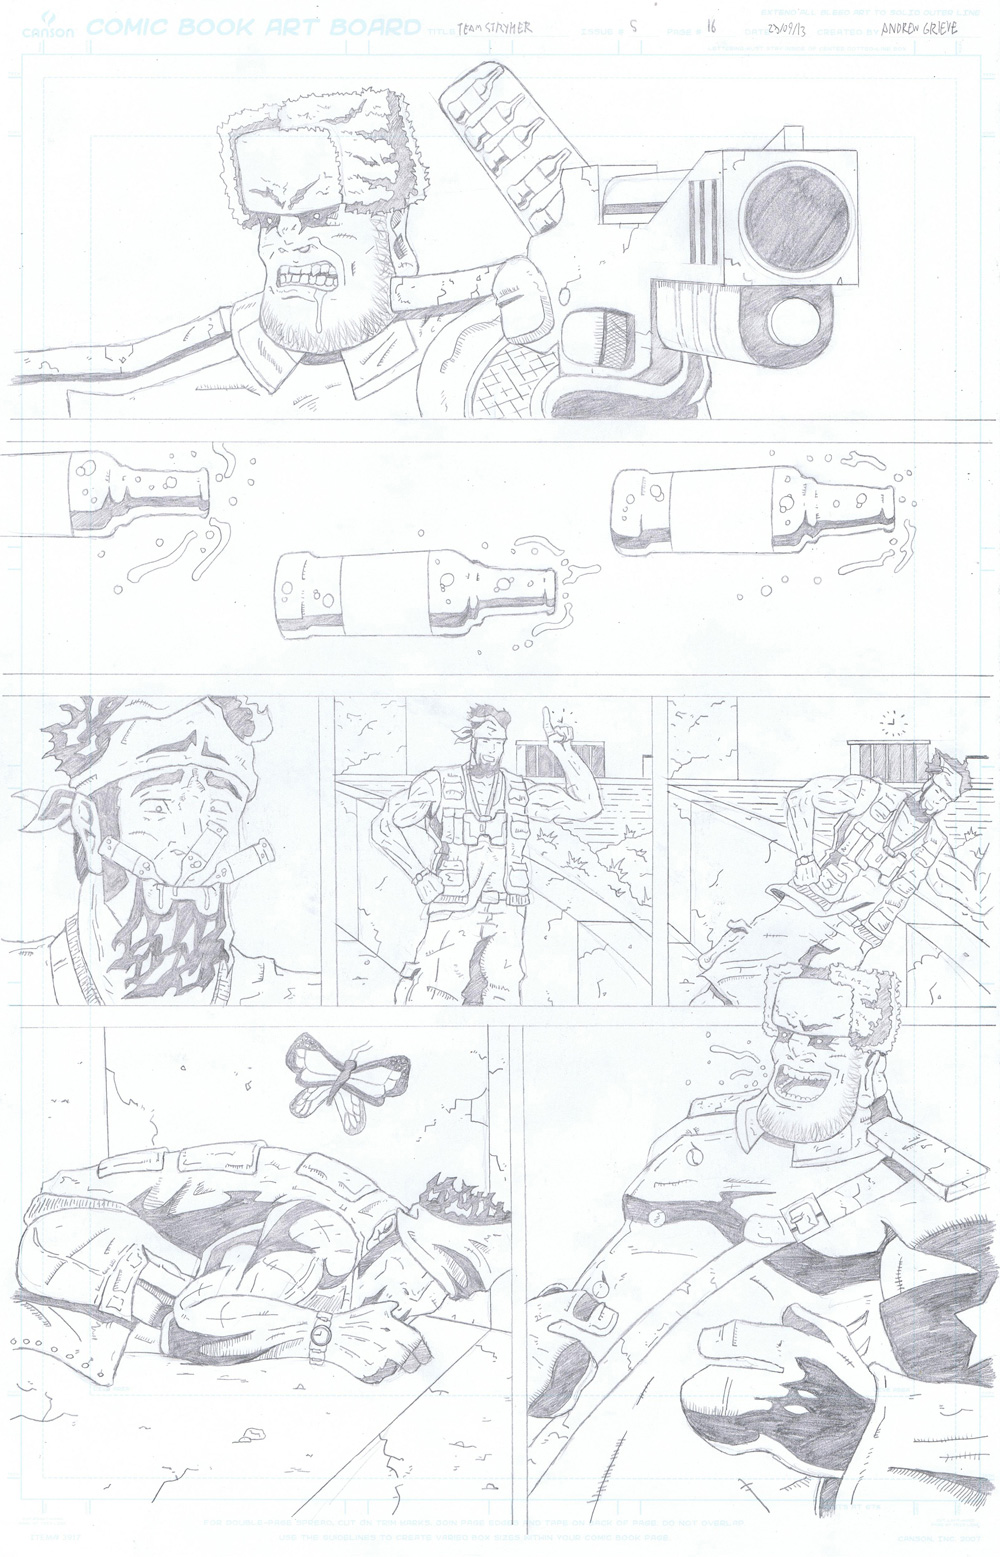 MISSION 005: PAGE 16 PENCIL